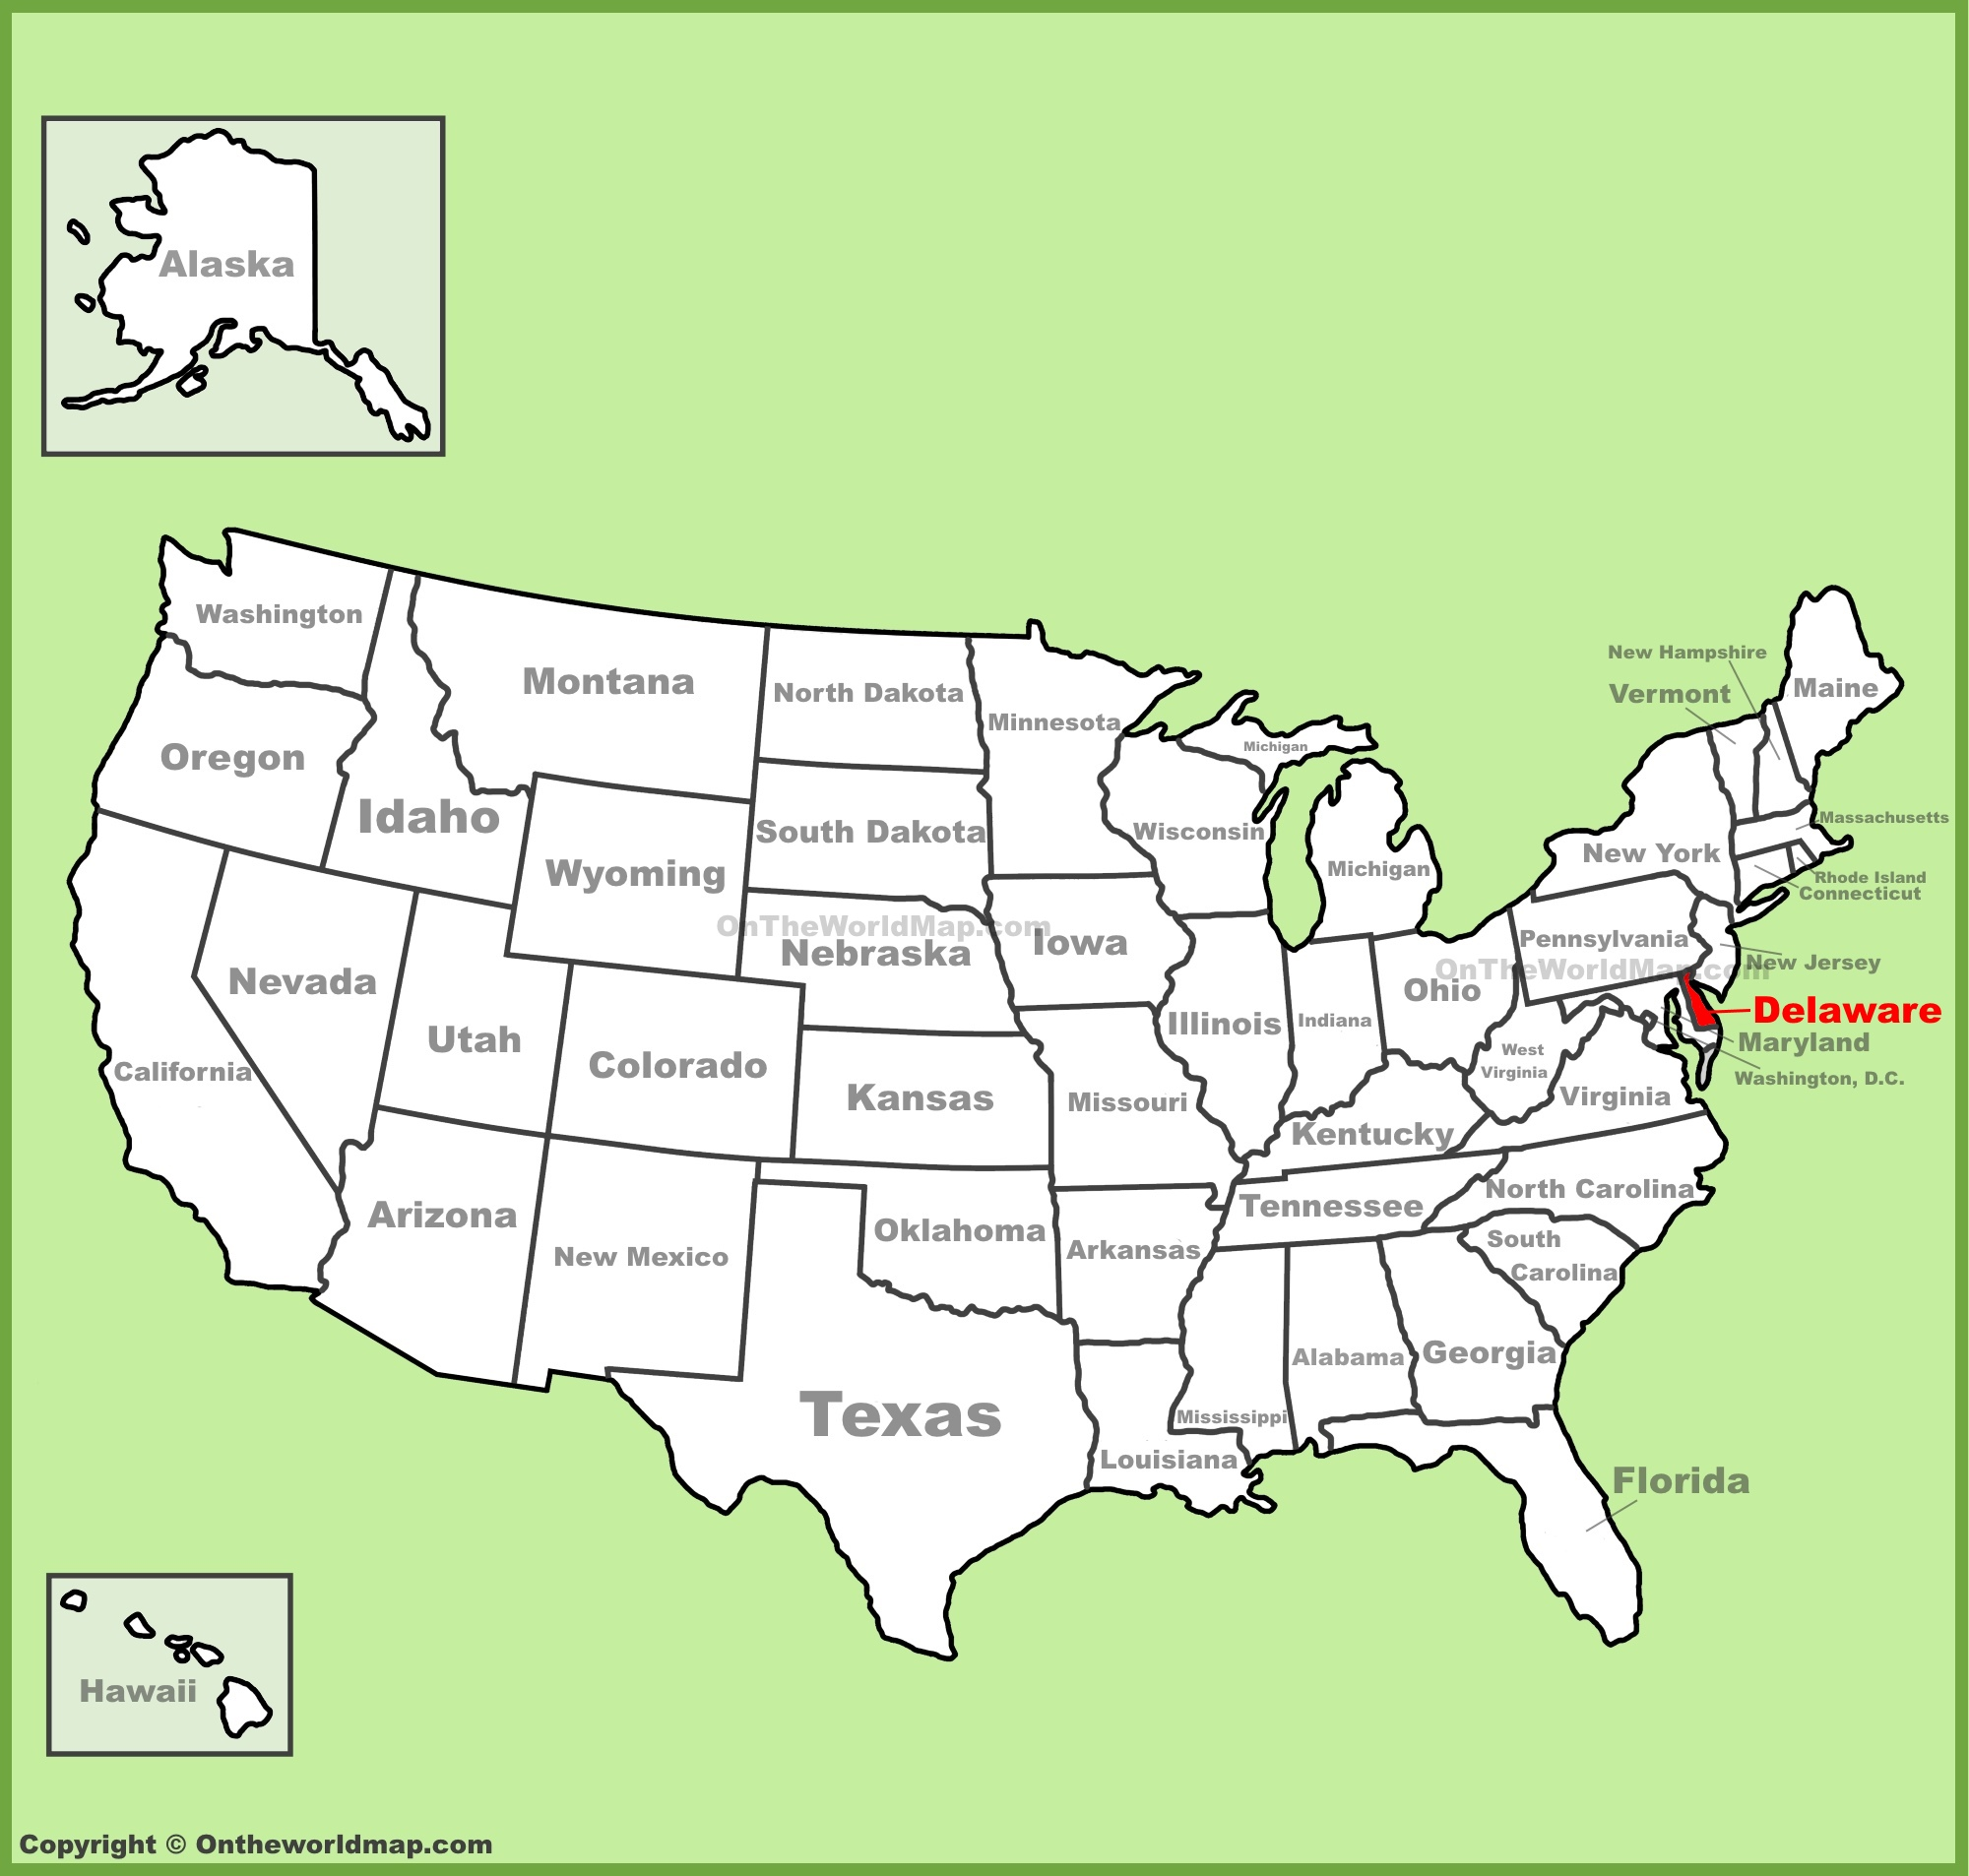 Delaware On Us Map Delaware location on the U.S. Map